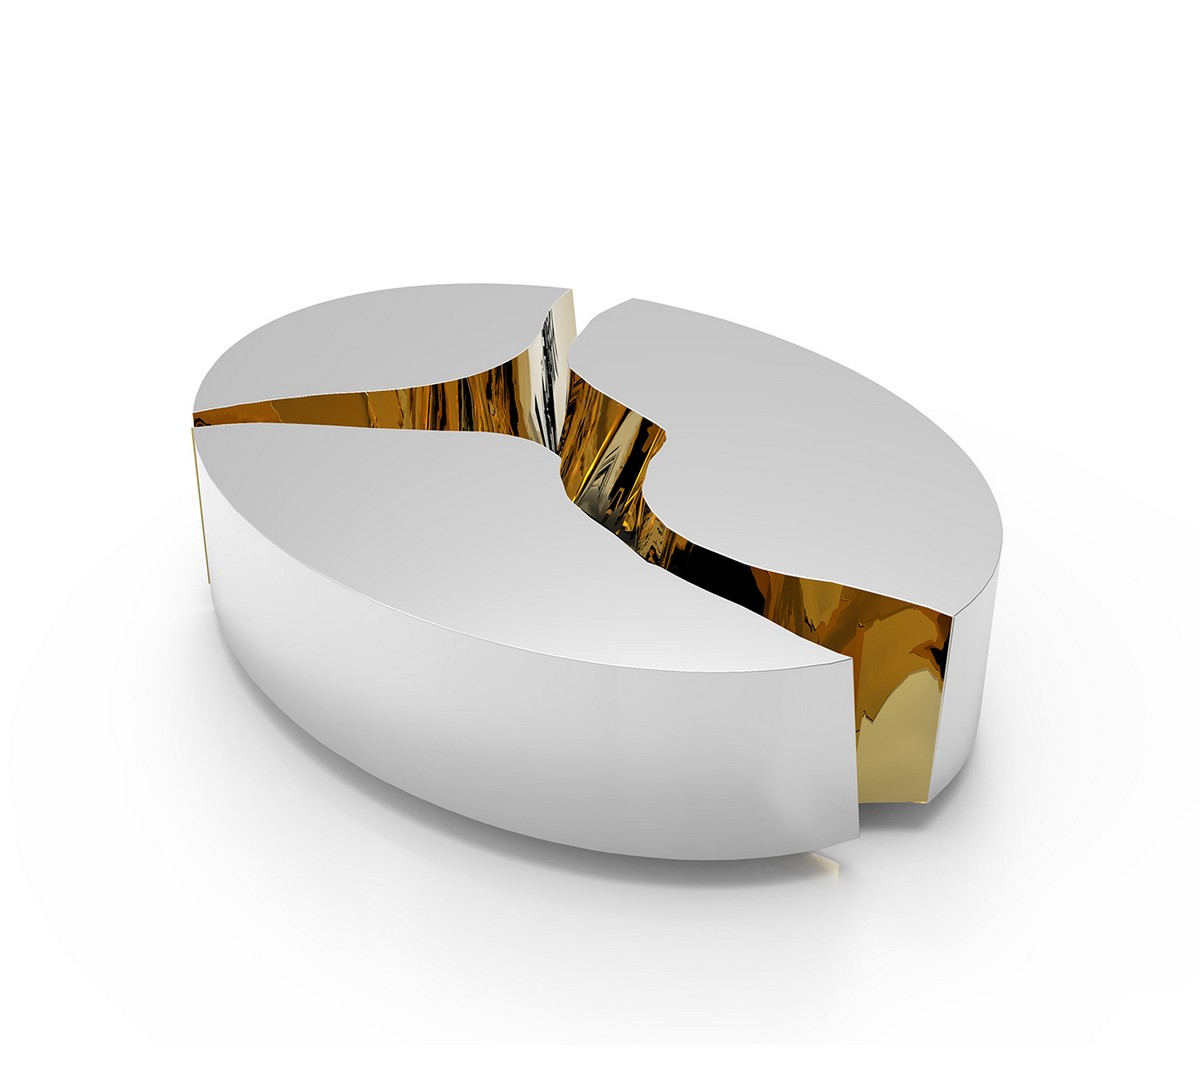 The Lapiaz Center Table: When Interior Design Goes Luxurious And Bold